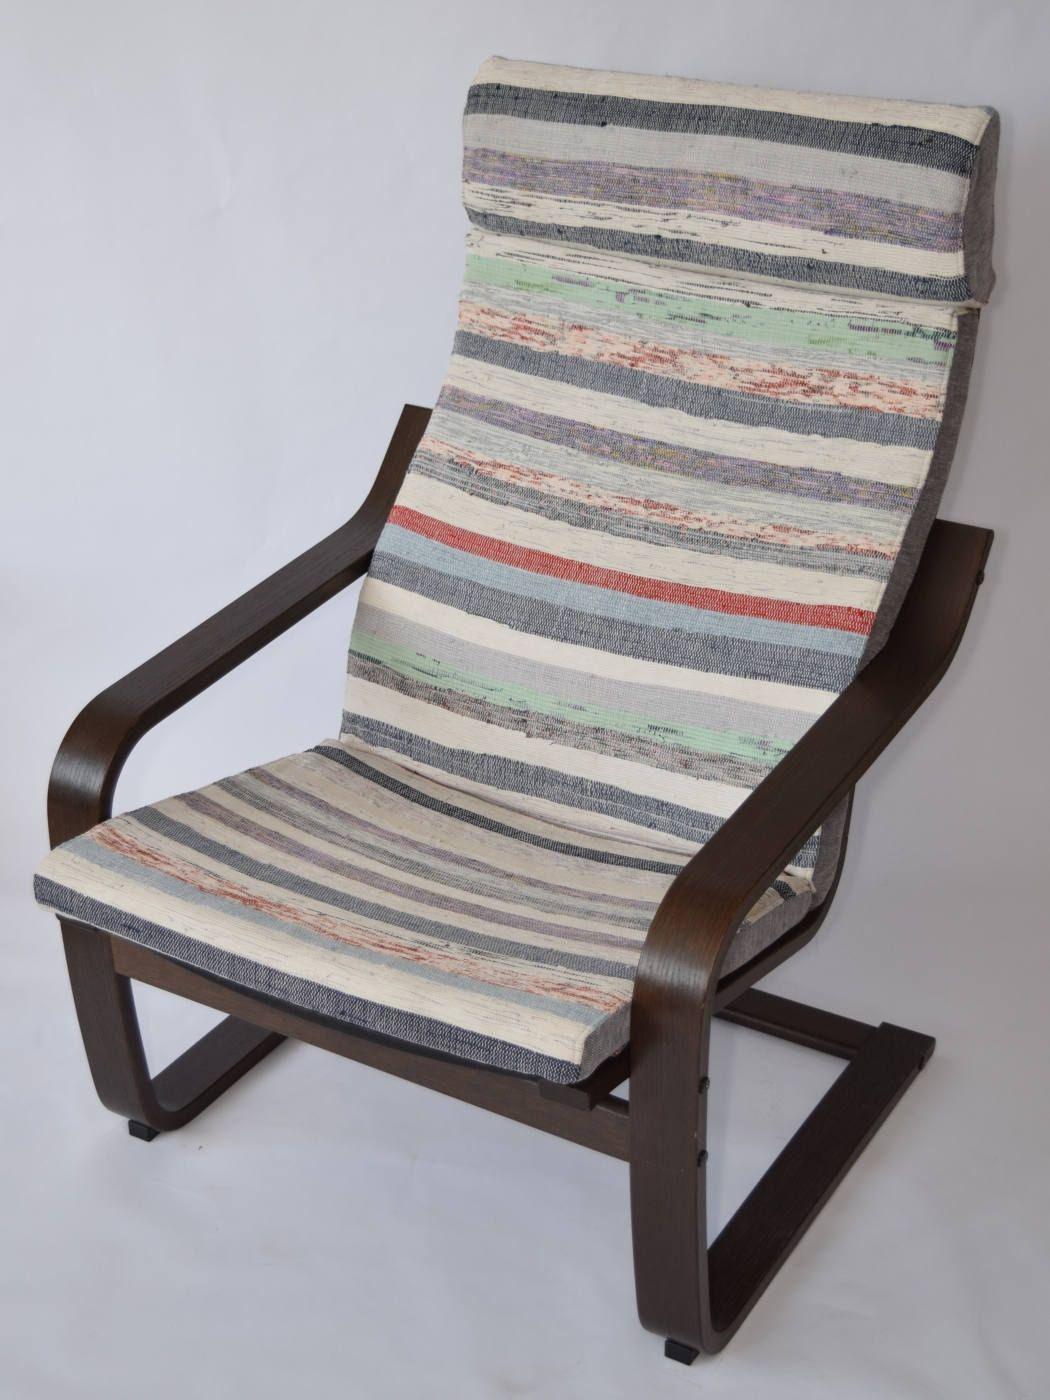 Ikea Slipcovers Kilim Chair Cover Ikea Rug Poang Chair Covers